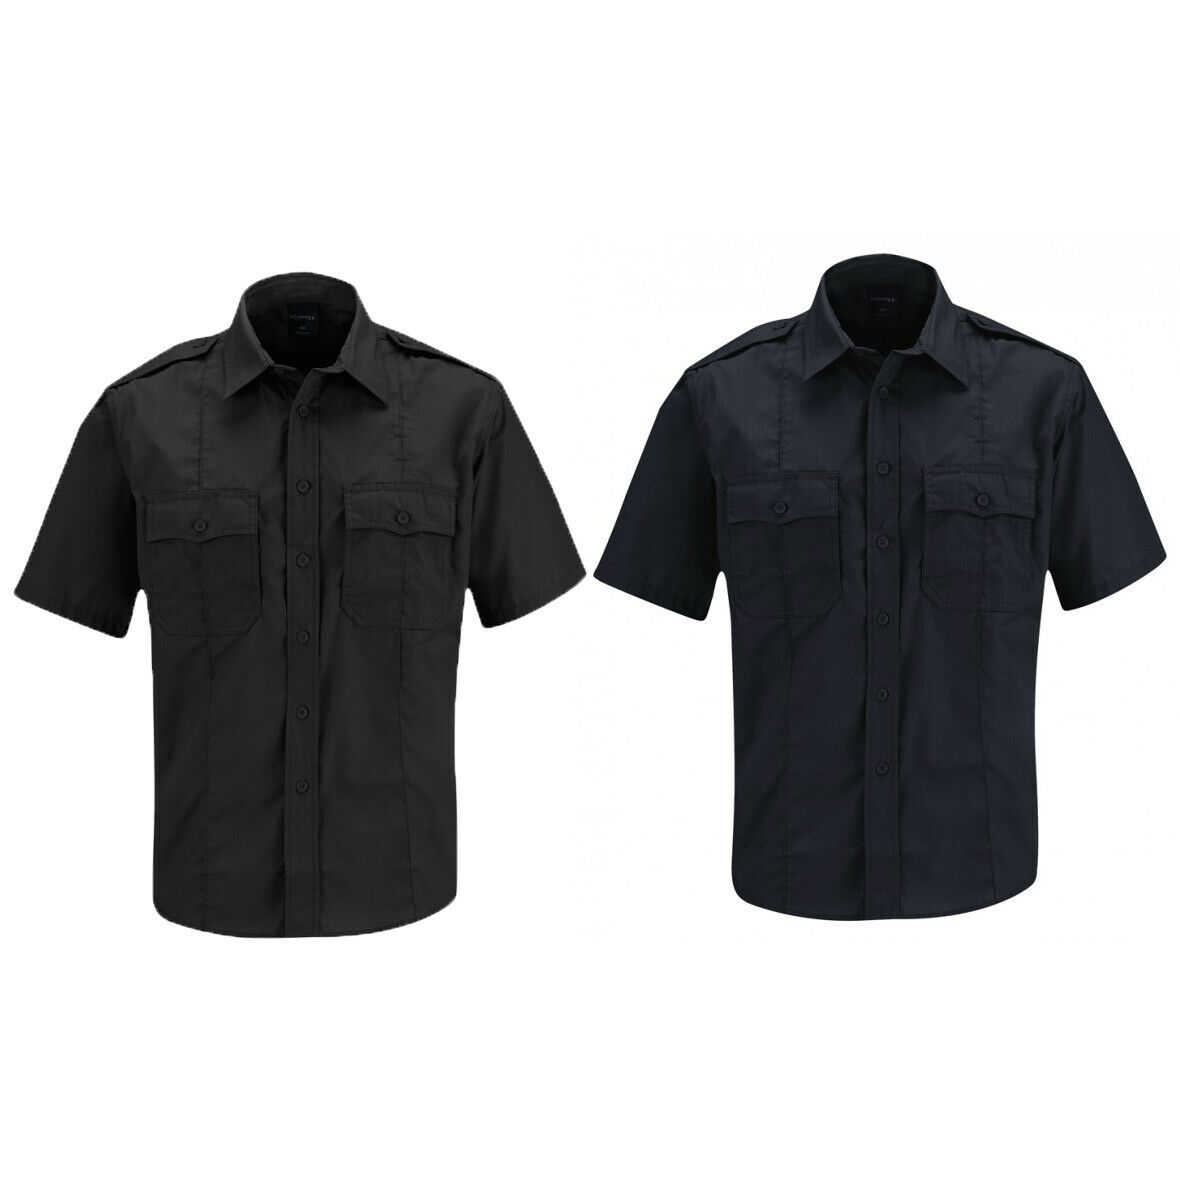 Propper Men's SS Class B Cotton Polyester Twill Mens Shirt - Short Sleeve